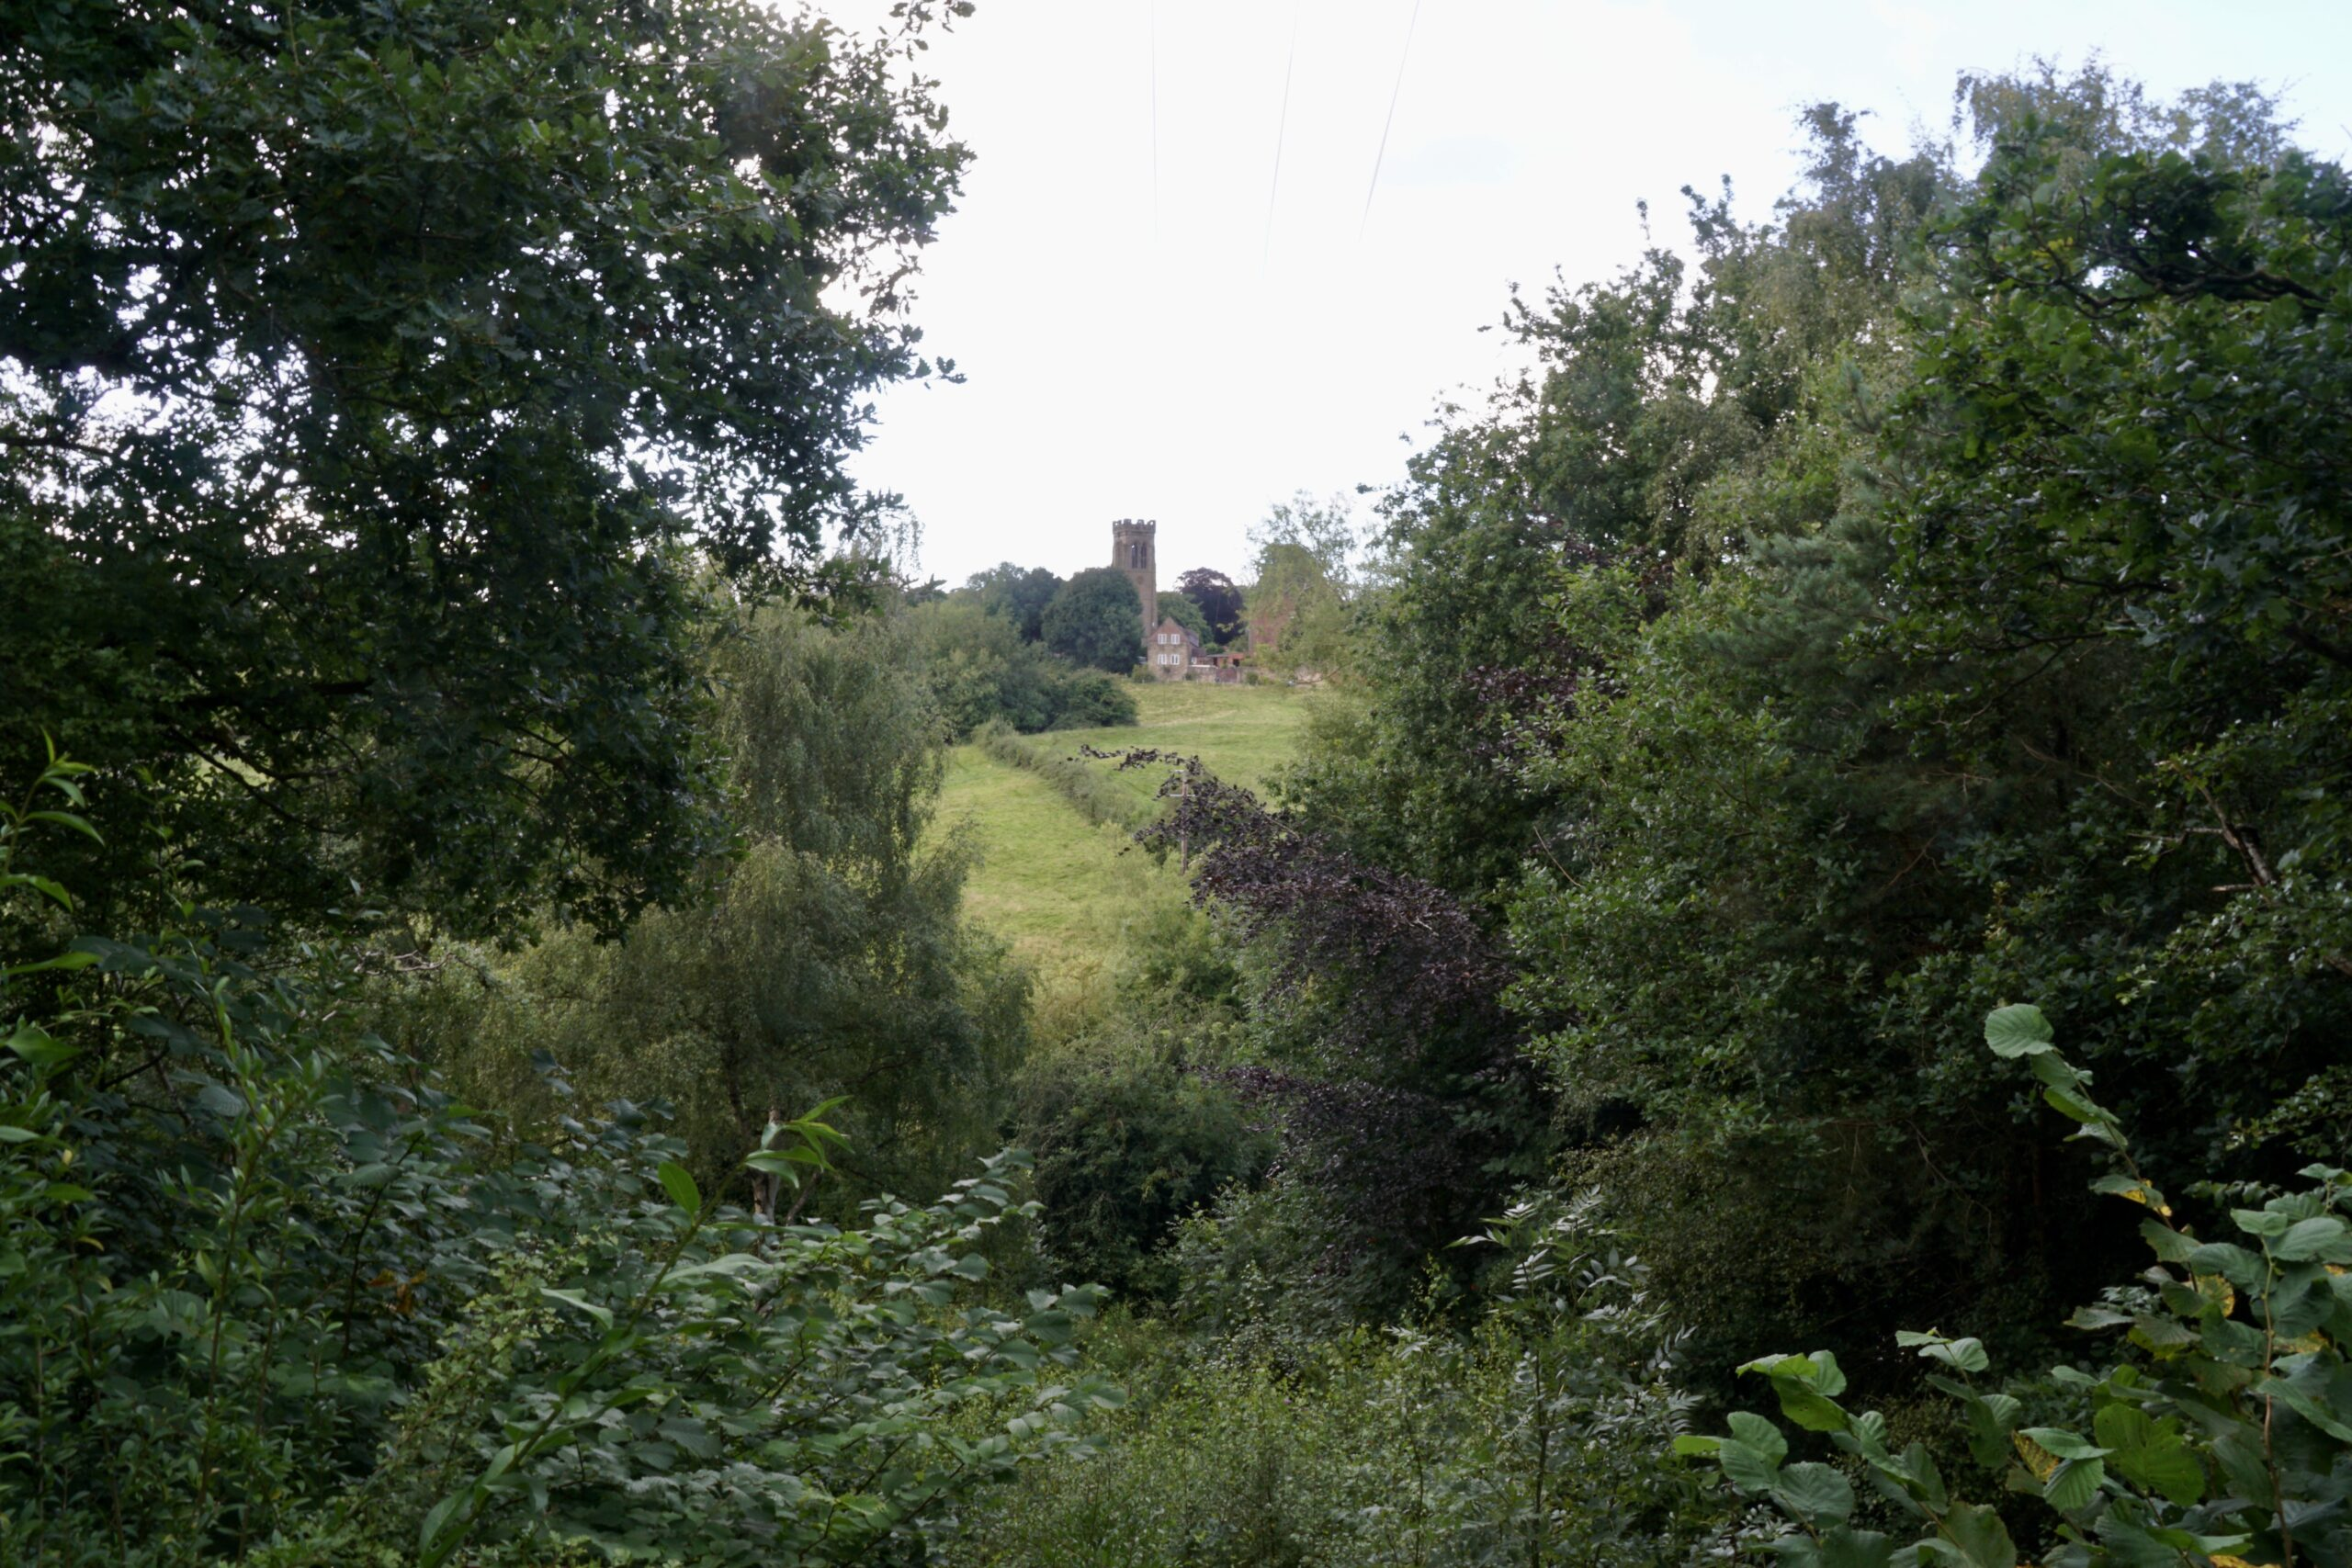 A view towards all Saints church - July